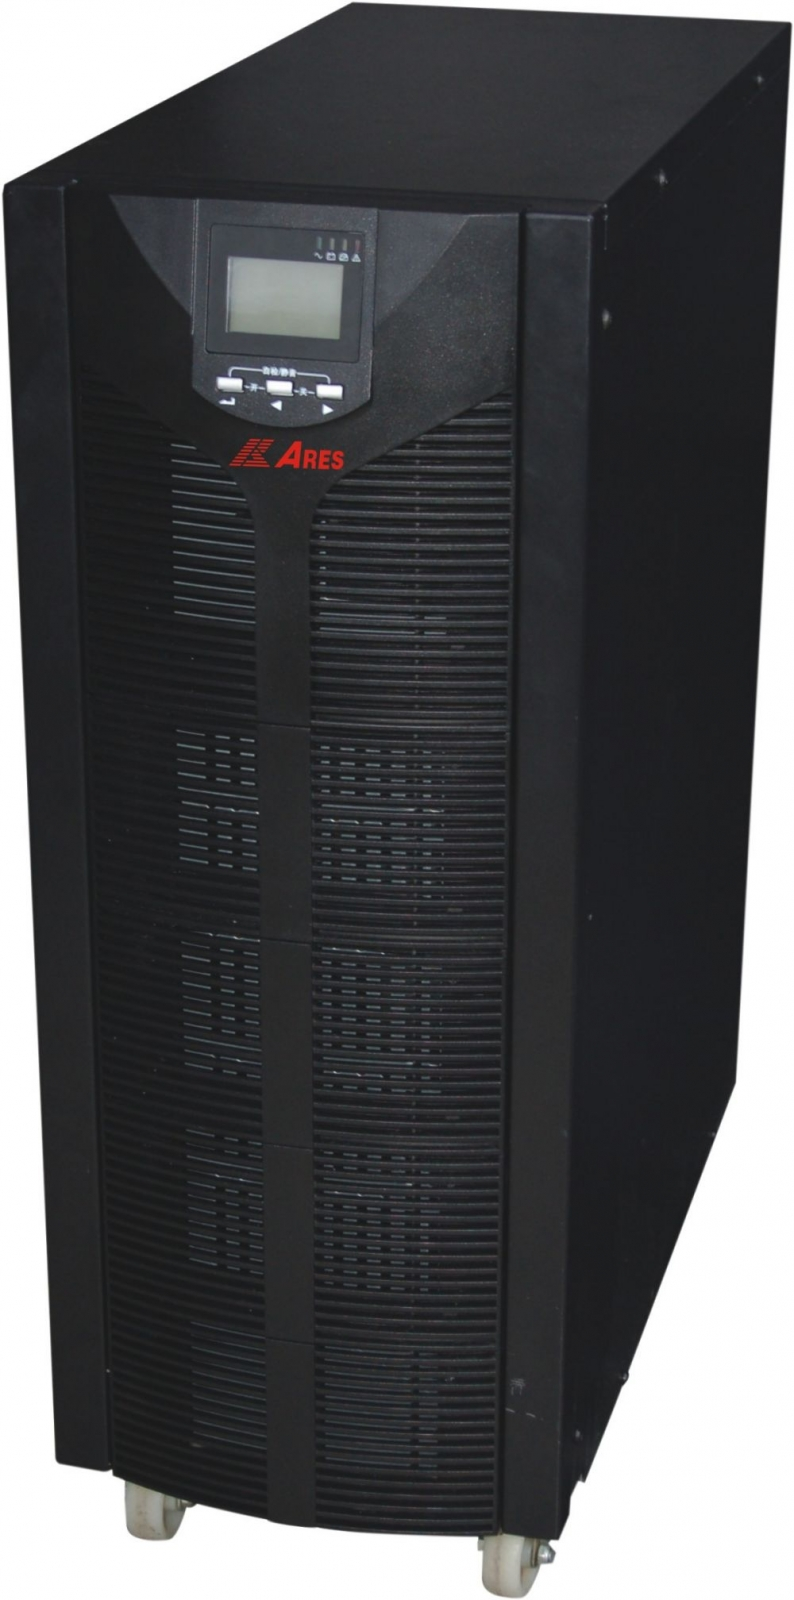 UPS 6KVA Ares AR906IIH (5400w) Online Tower